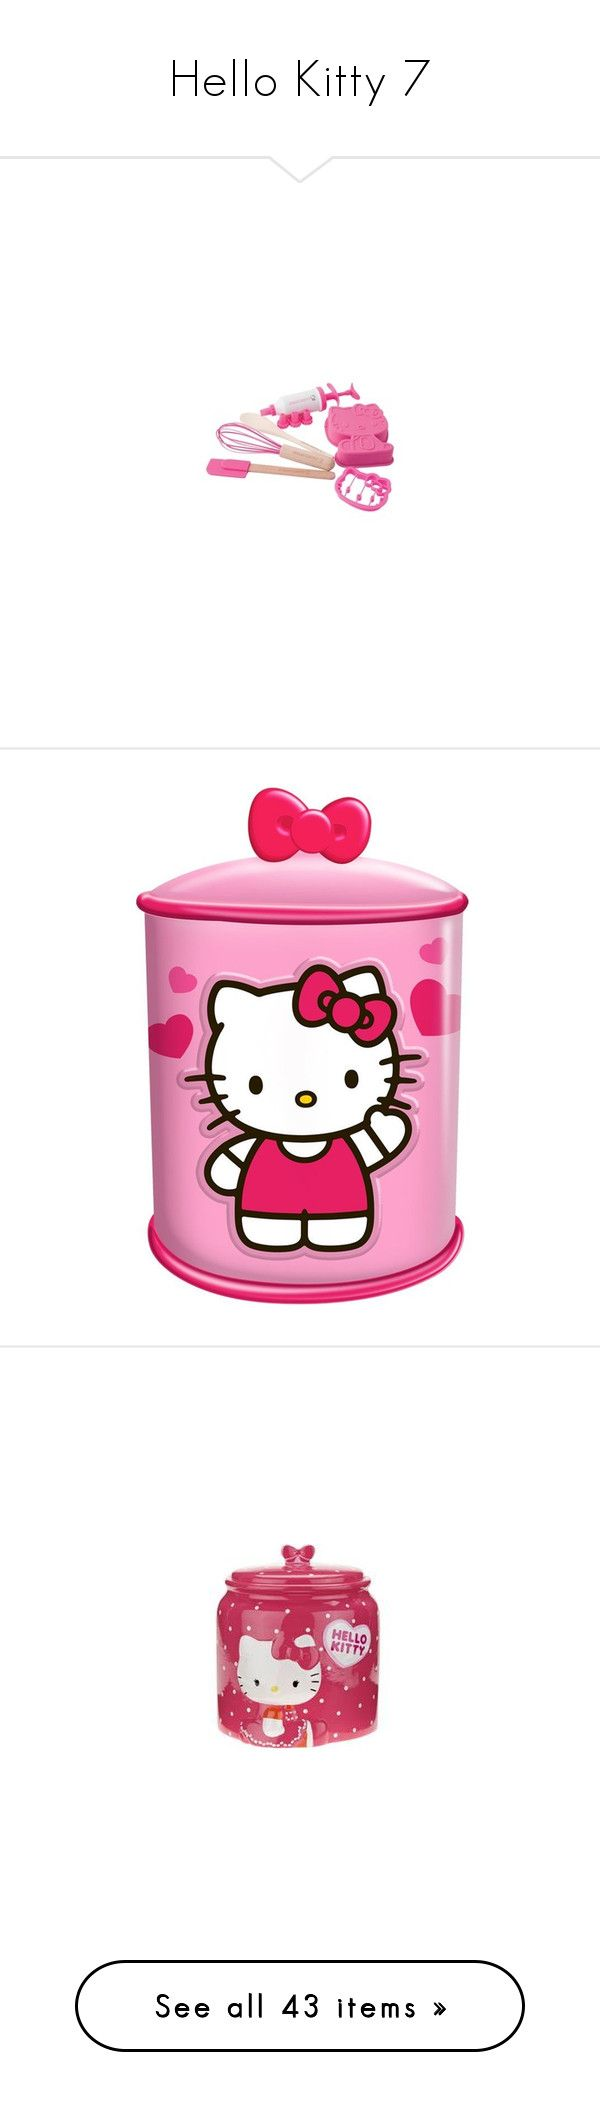 """""""Hello Kitty 7"""" by denise-drinhouser ❤ liked on Polyvore featuring home, kitchen & dining, food storage containers, ceramic food storage containers, ceramic cupcake cookie jar, ceramic biscotti jars, ceramic cookie jar, cupcake cookie jar, hello kitty and food"""